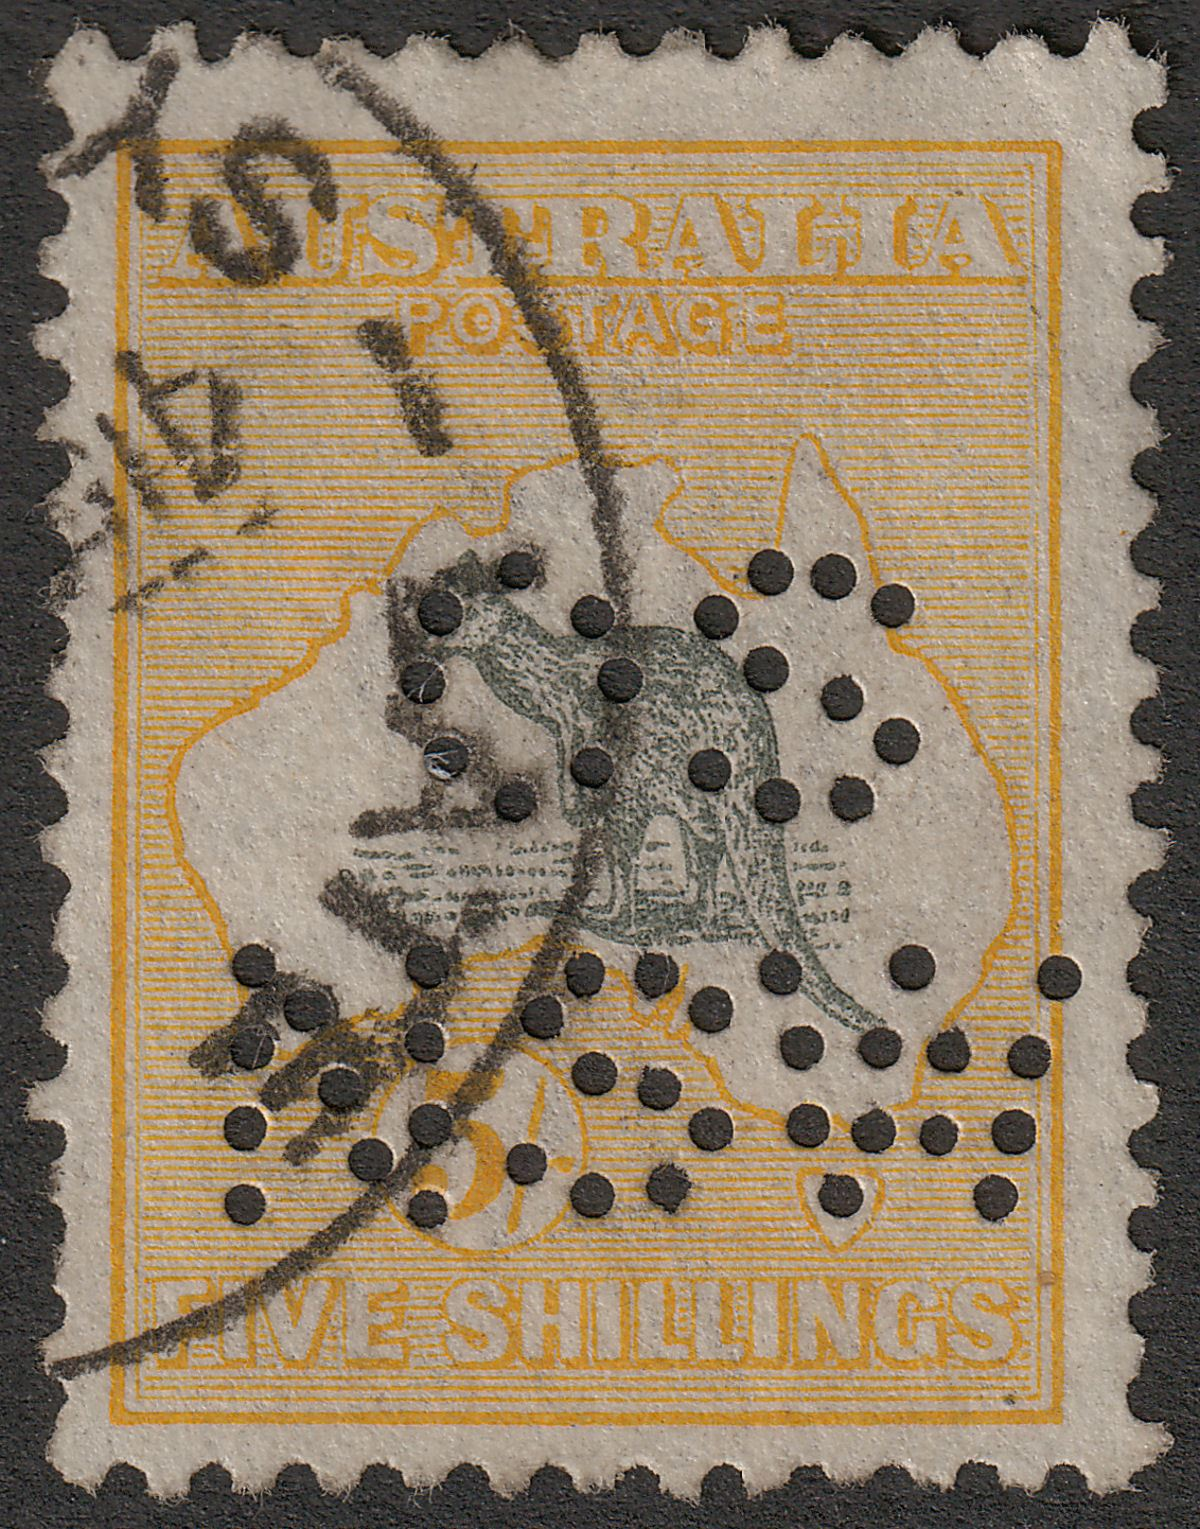 Australia 1918 KGV Roo 5sh Grey and Yellow perf OS NSW Used SG42 cat £110